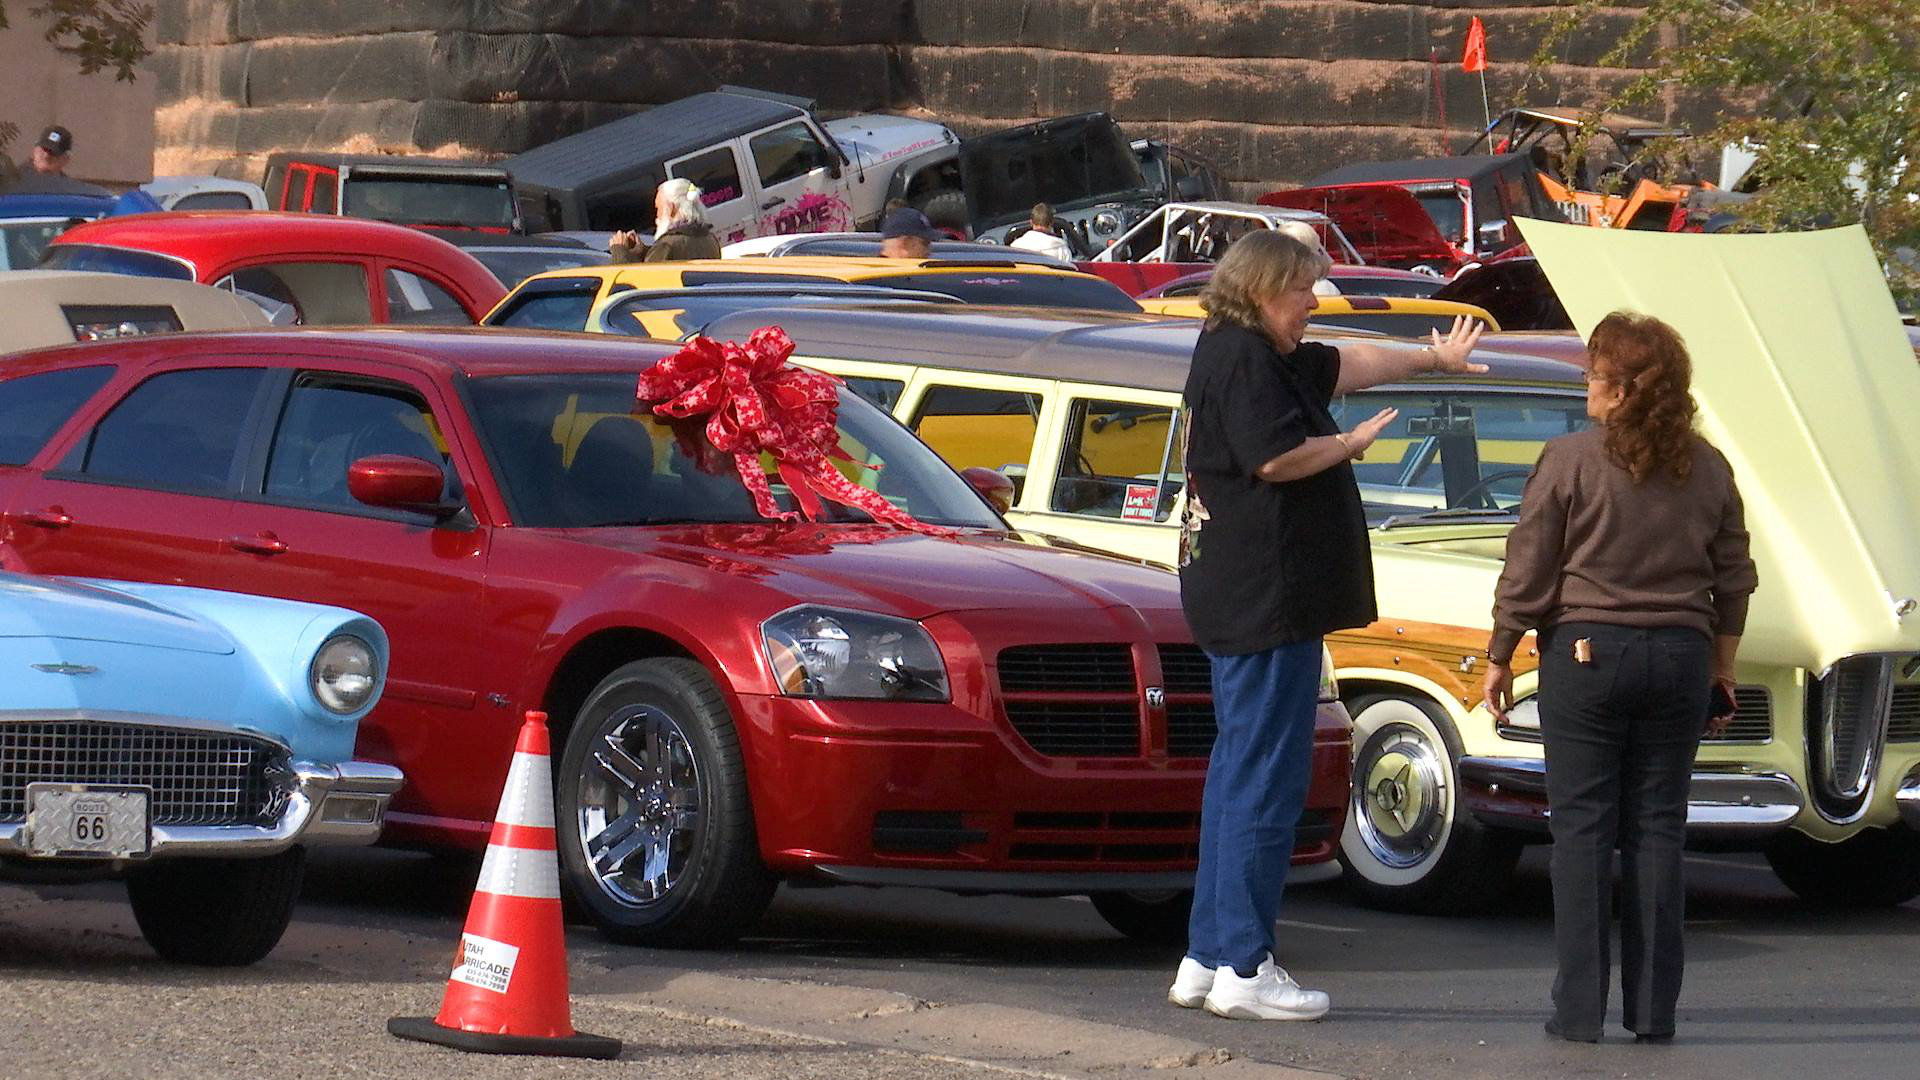 The annual Car Guys Car Toys for Tots fundraising event features more than 100 vehicles on display and raises thousands of dollars, St. George, Utah, Dec. 10, 2016 | Photo by Sheldon Demke, St. George News